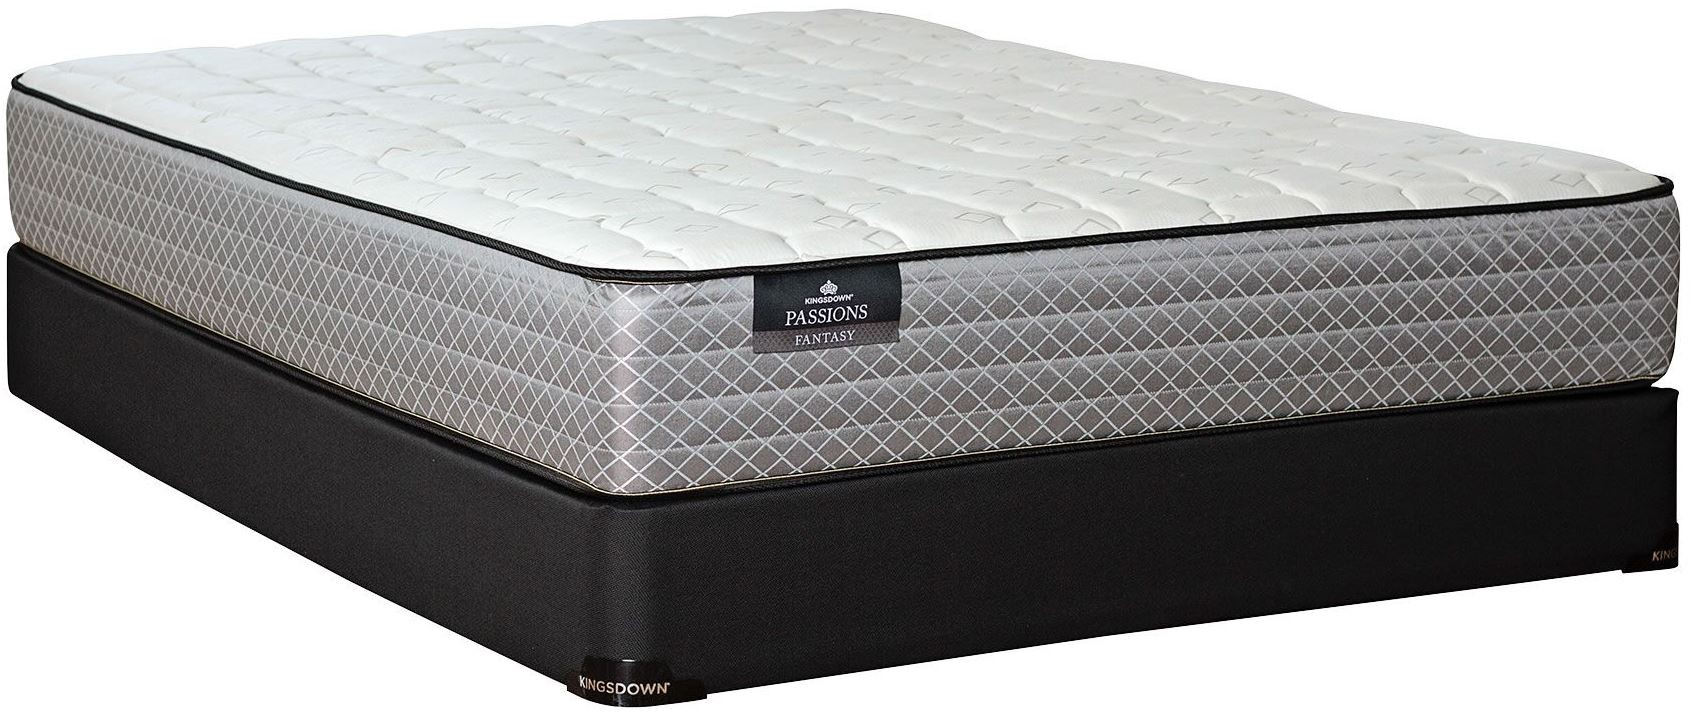 Passions Fantasy Firm Full Extra Long Mattress